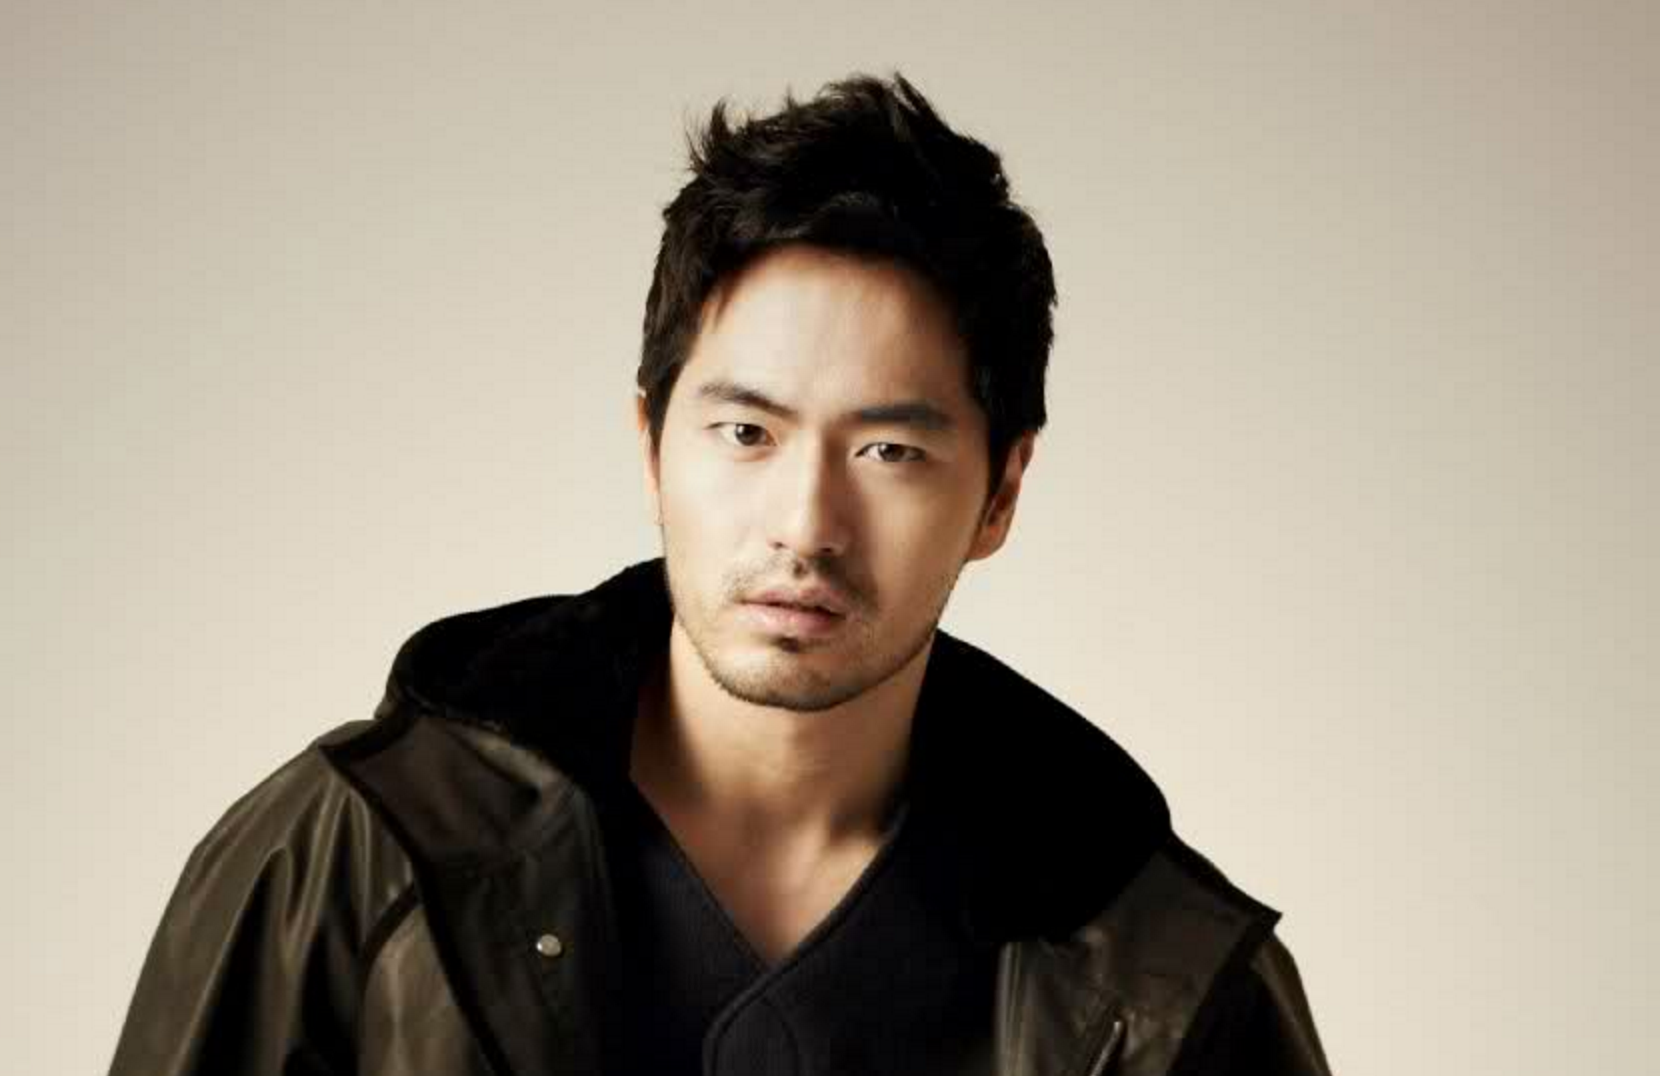 Lee Jin Wook Placed On Travel Ban, Agency Voices Frustrations And Suspicions About Accuser